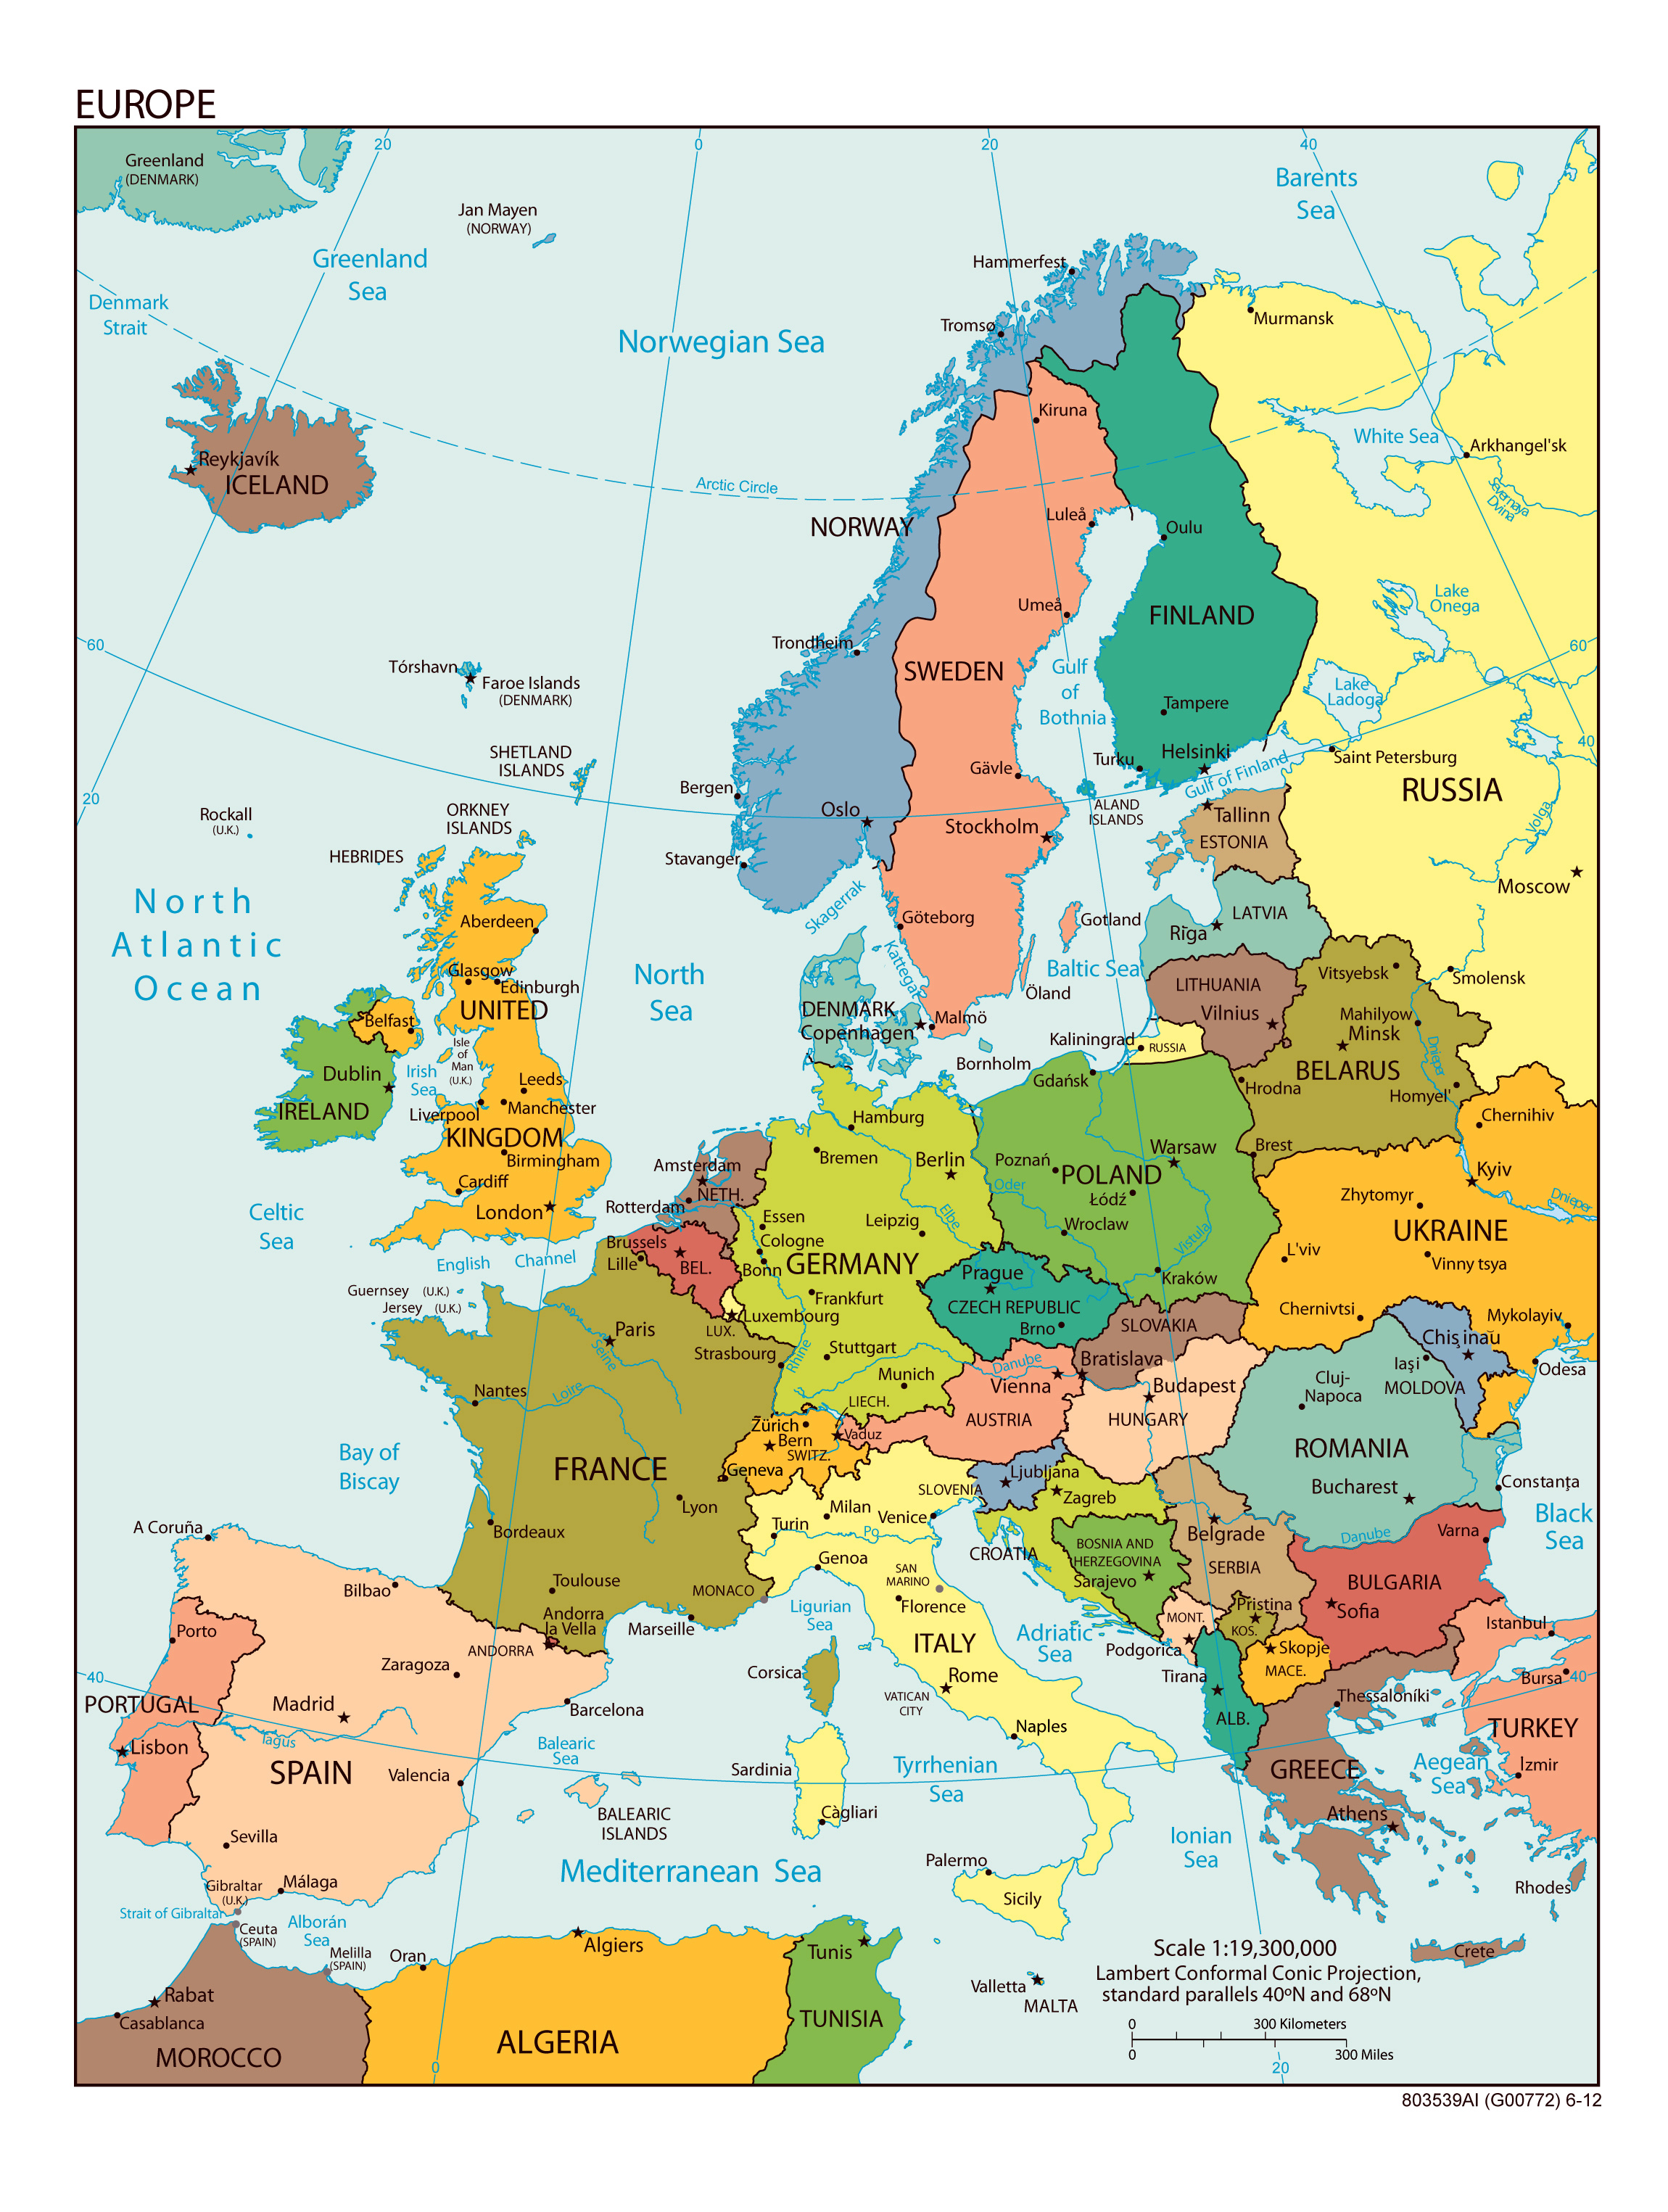 Map Of Europe With Major Cities Large detailed political map of Europe with all capitals and major